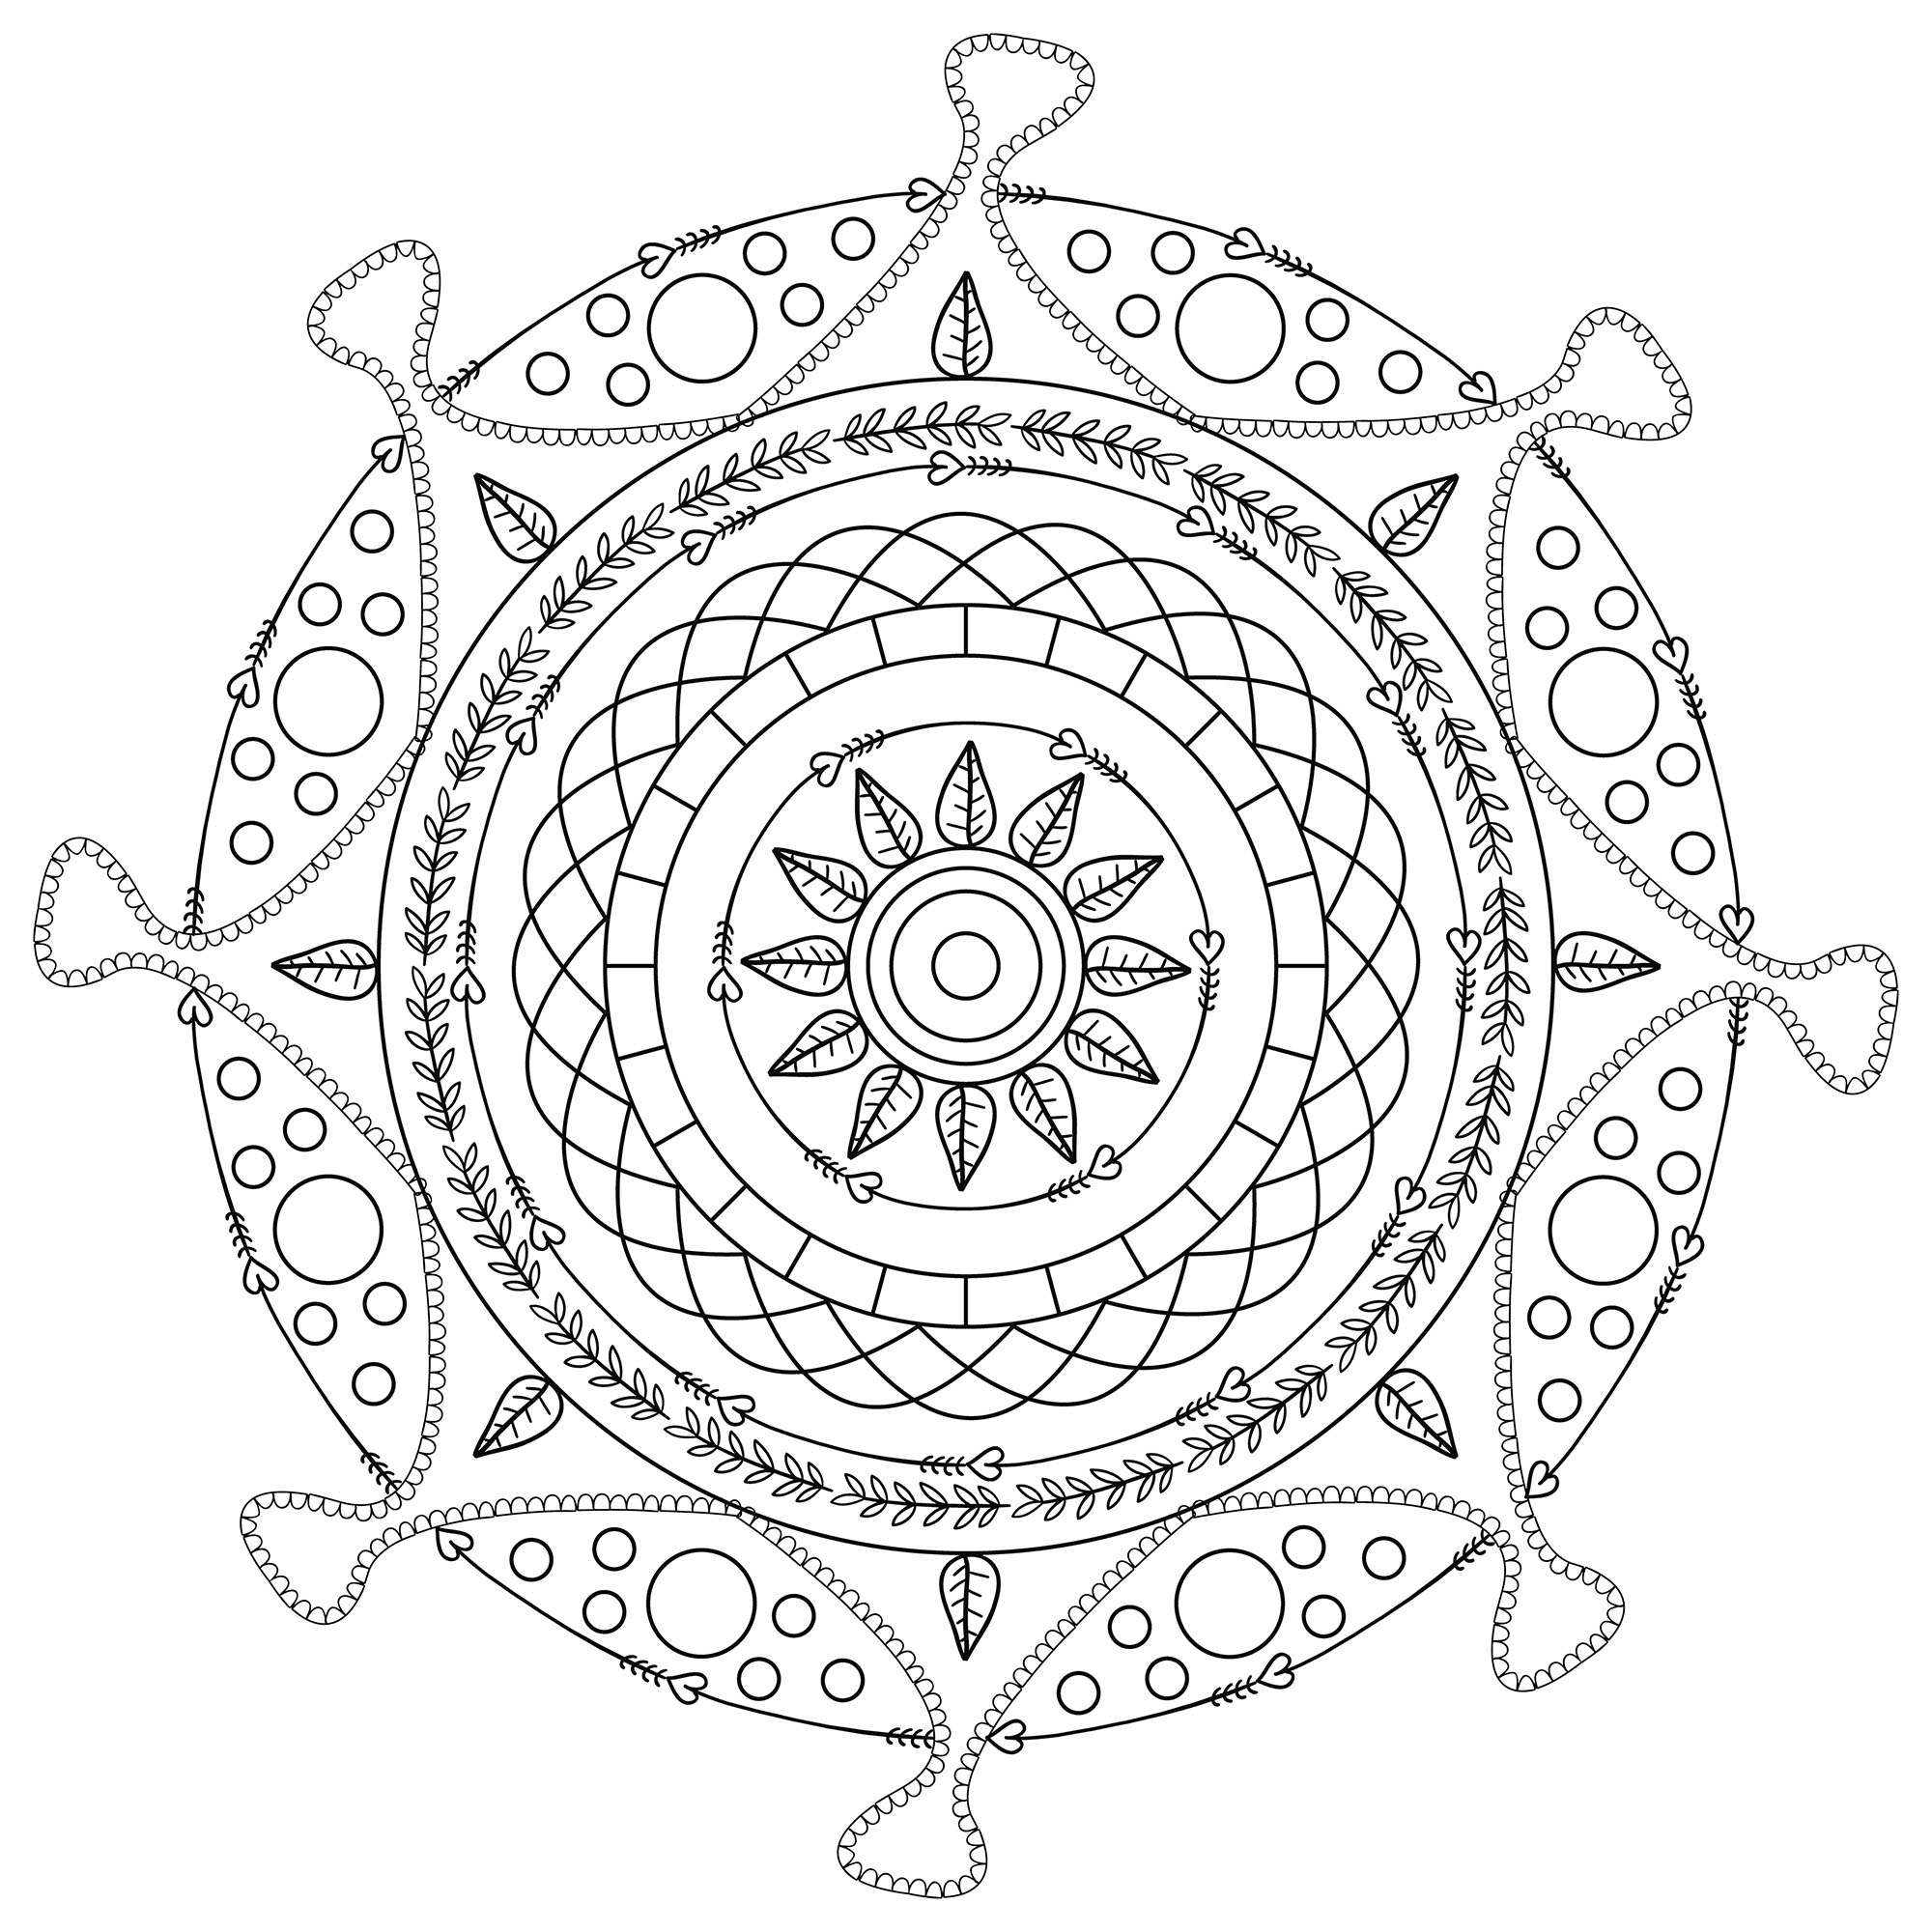 Elegant and harmonious Mandala ... When coloring can really relax you ... This is the case with this Mandala coloring page of high quality. The word 'mandala' is from the classical Indian language of Sanskrit.